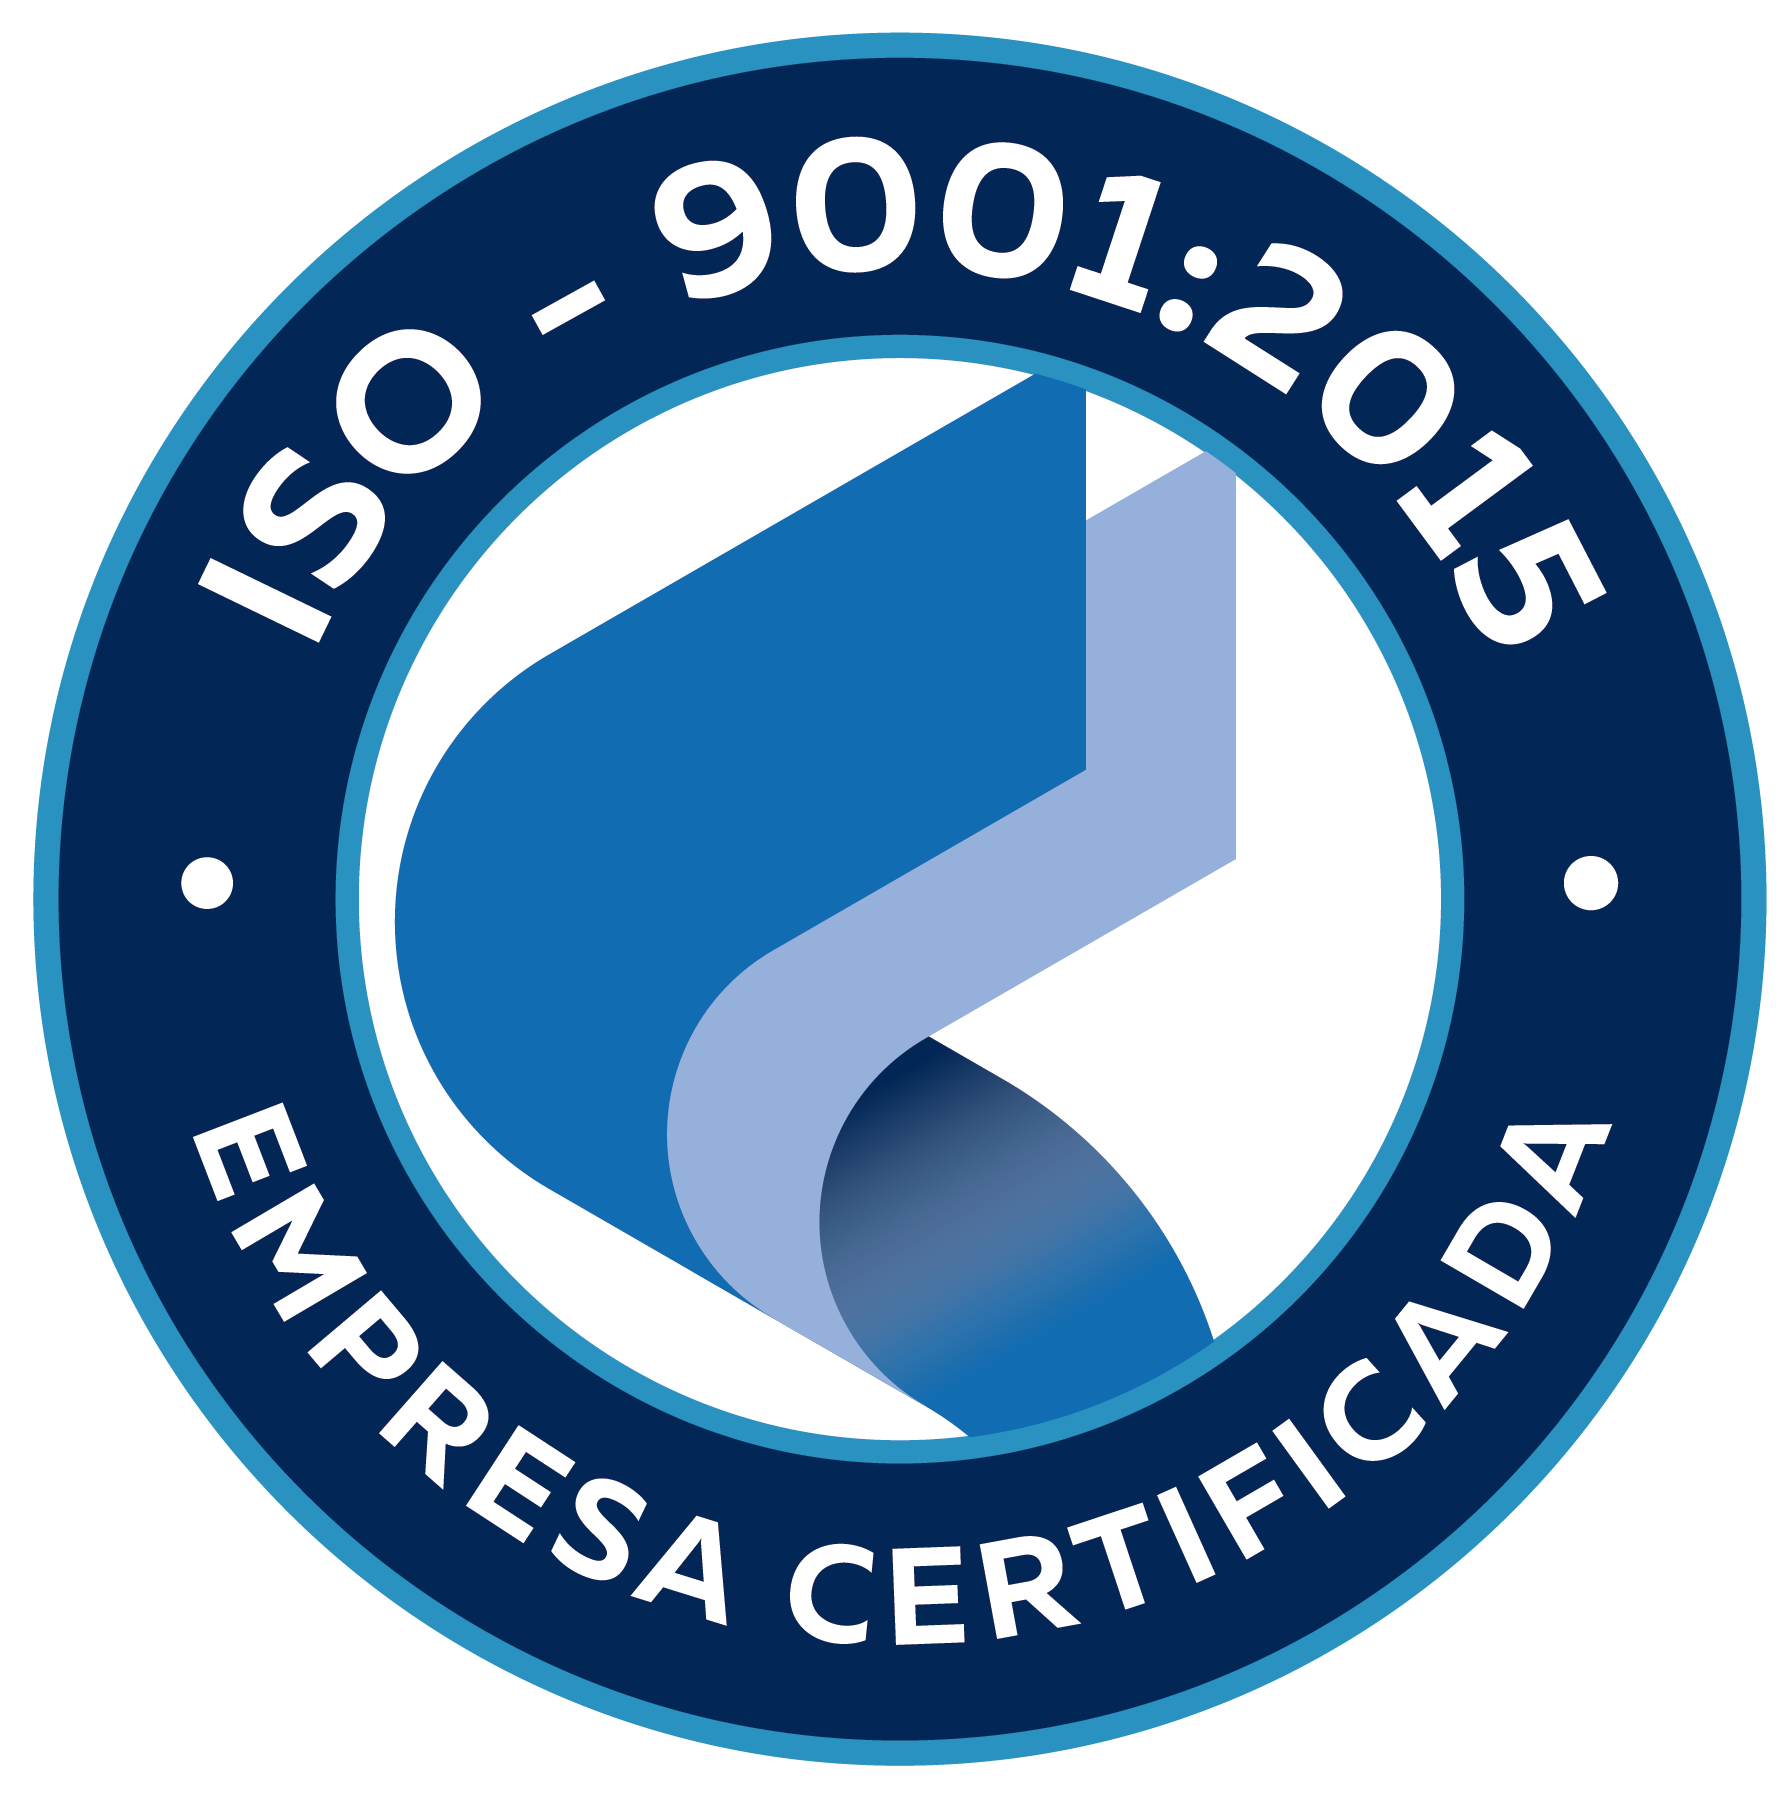 Selo-ISO-9001 2015.png